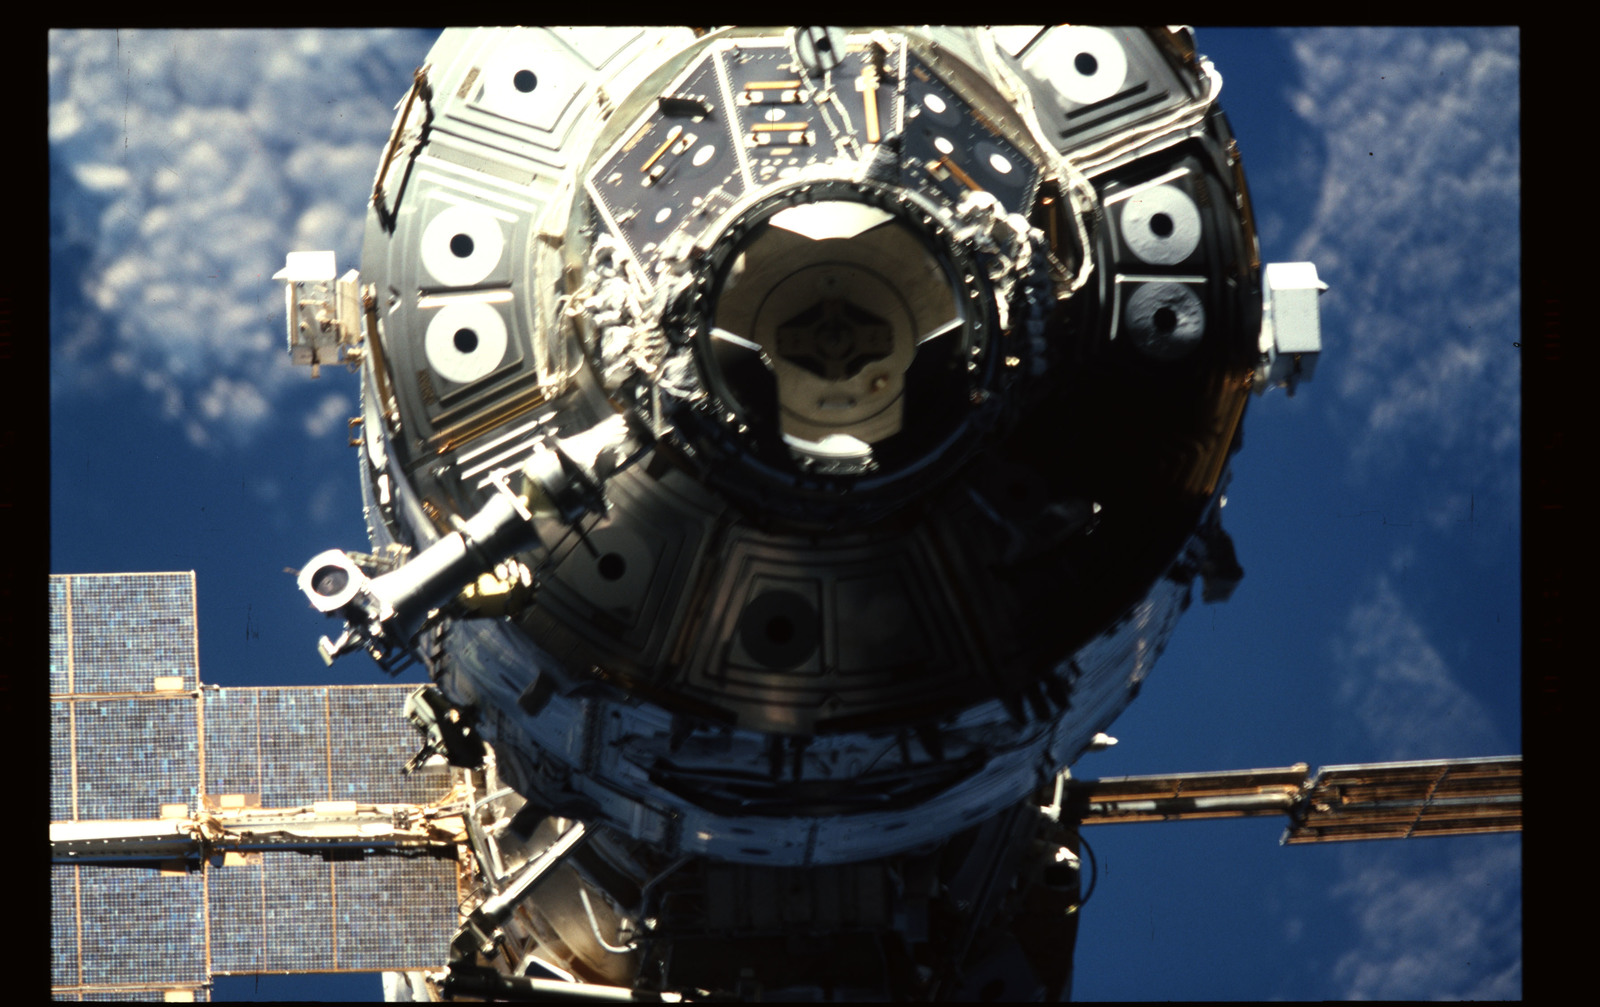 STS101-355-031 - STS-101 - Documentation of the ISS during approach